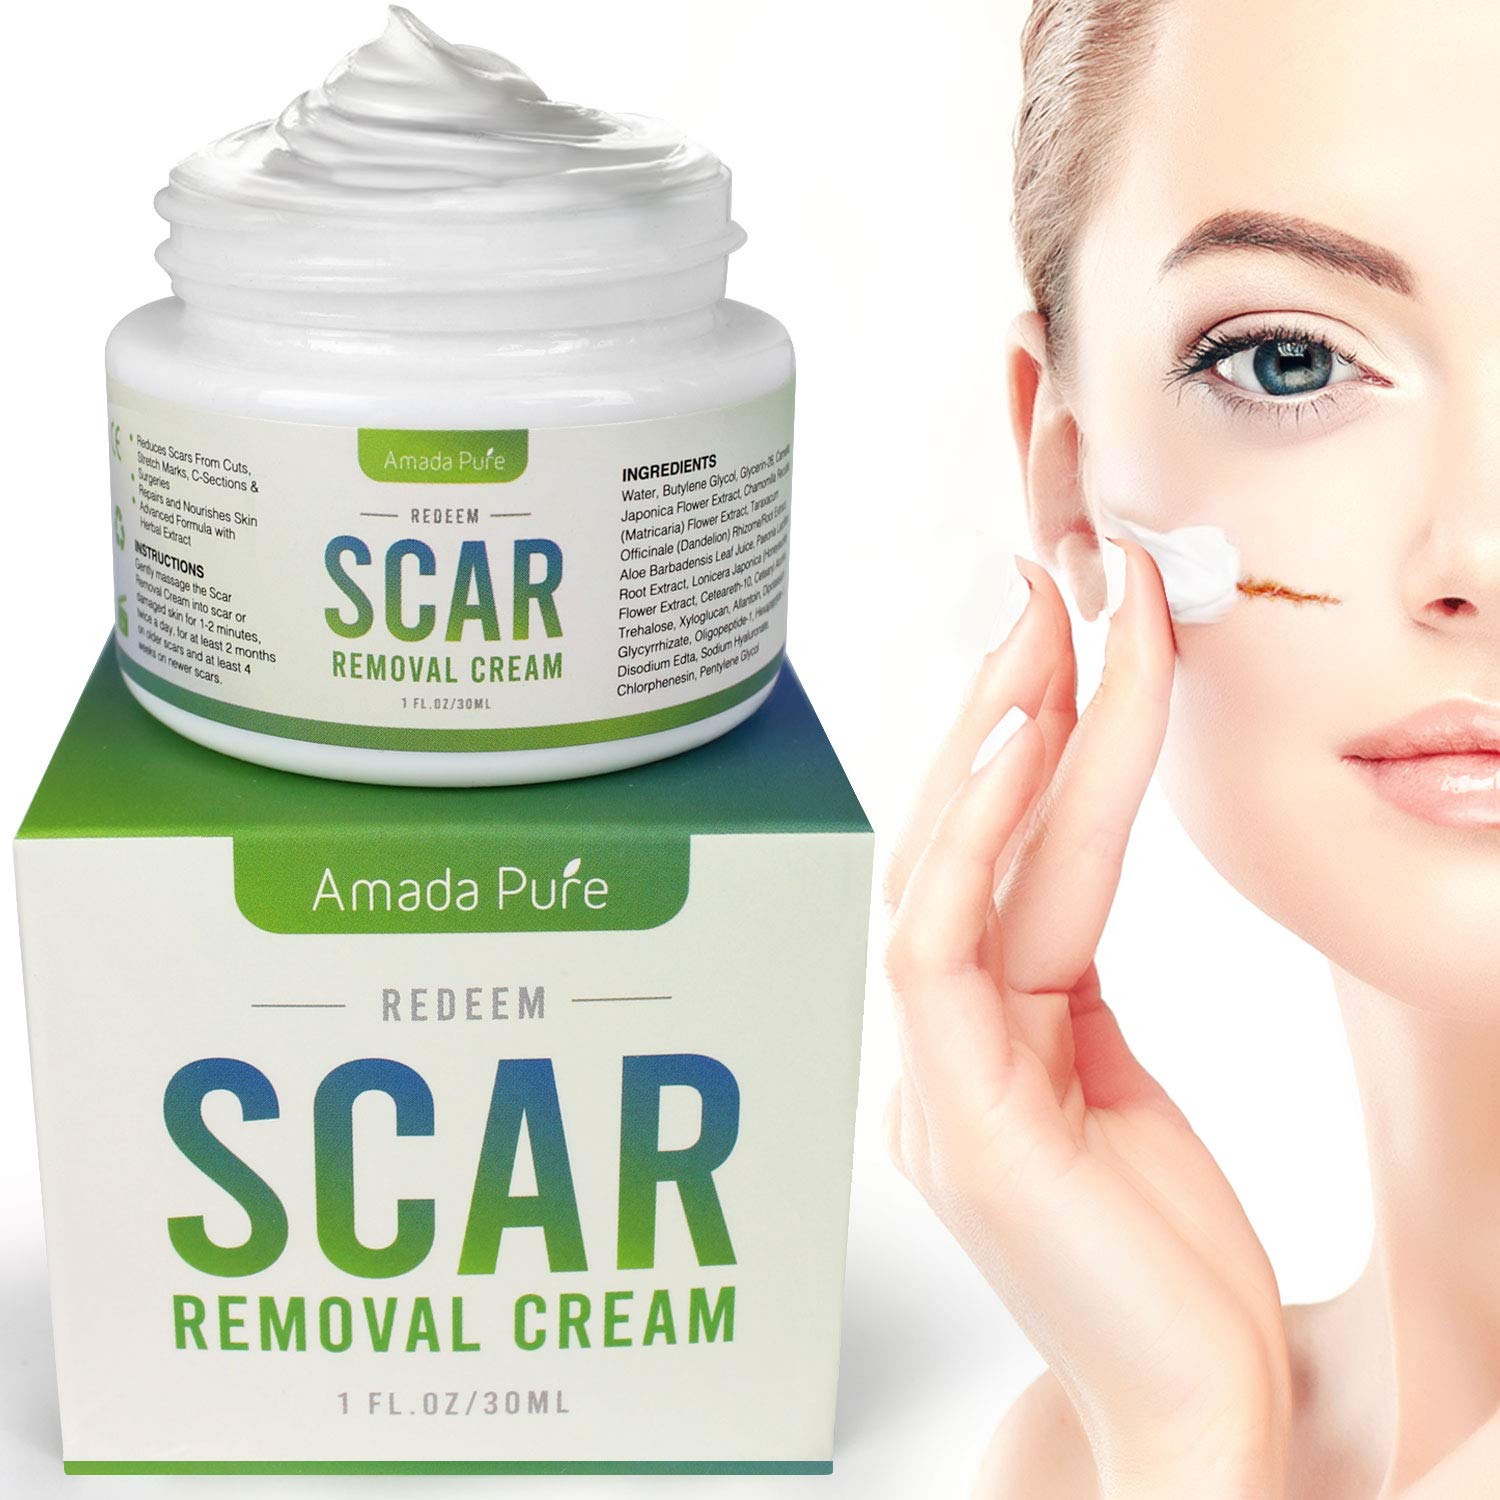 Amada Pure Scar Removal Cream - Acne Scar Removal Cream for Face and Body, Old & New Scars from Cuts, Stretch Marks, C-Sections & Surgeries - with Natural Herbal Extracts Formula - (30 ml) by Amada Pure